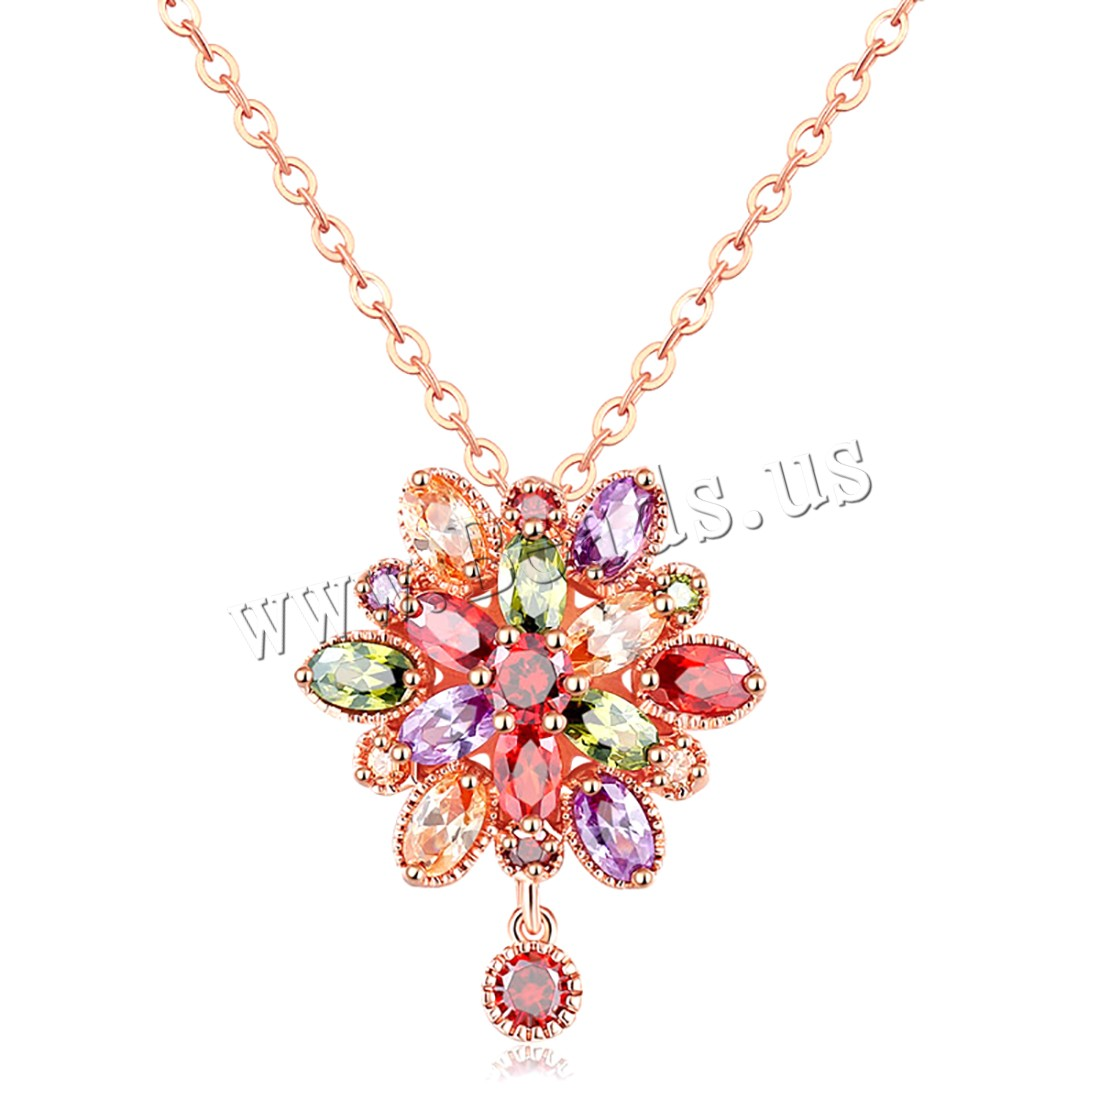 Buy Brass Necklace 1.9inch extender chain Flower real rose gold plated oval chain & micro pave cubic zirconia & woman nickel lead & cadmium free 21x25mm Sold Per Approx 17.7 Inch Strand